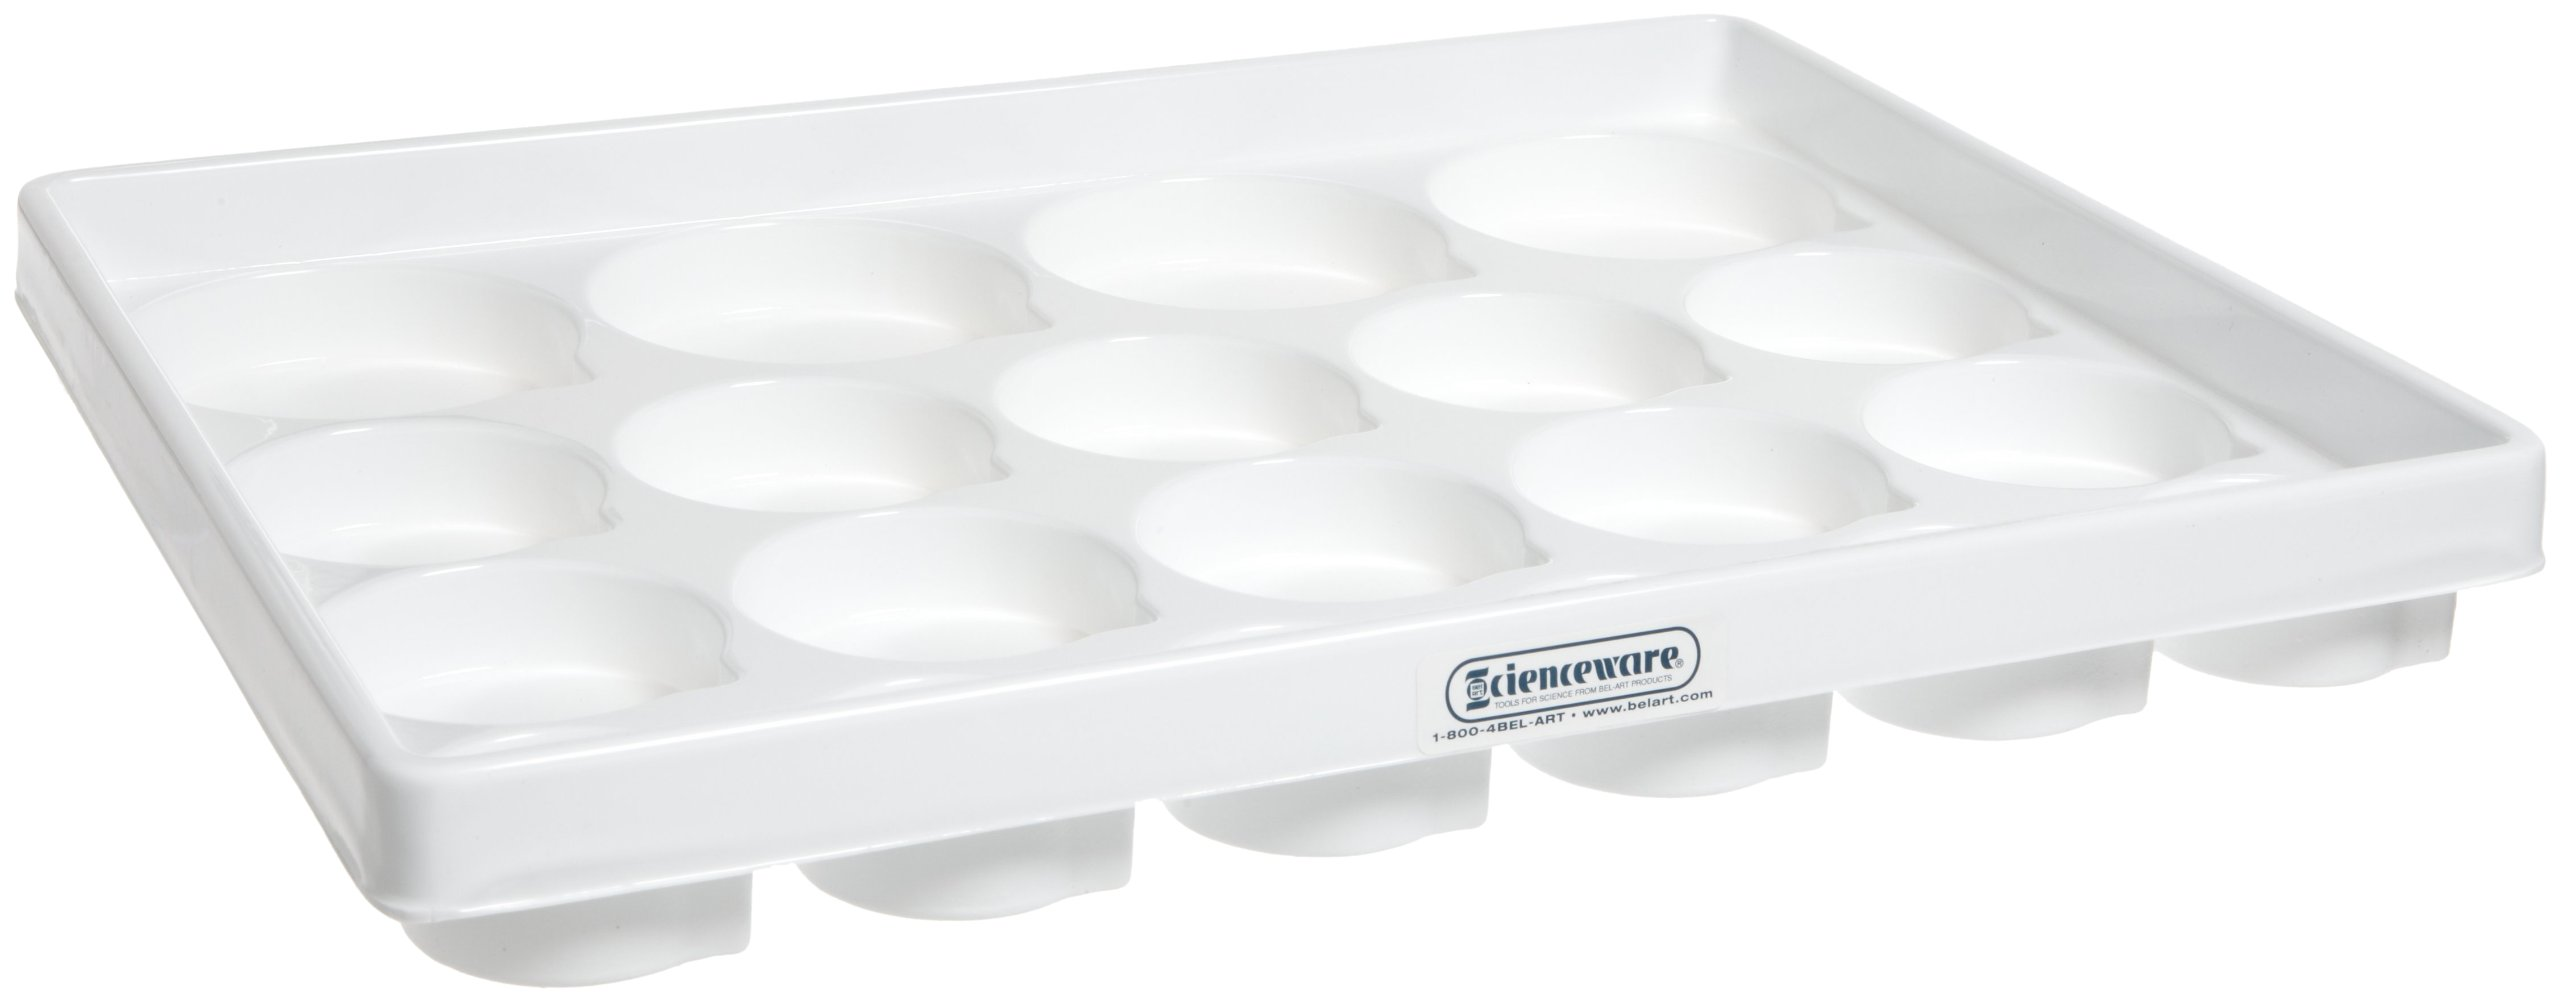 Bel-Art Lab Drawer Compartment Tray for Beakers, Flasks, Jars; 20 Wells, 14 x 17½ x 2¼ in. (H18650-0000)